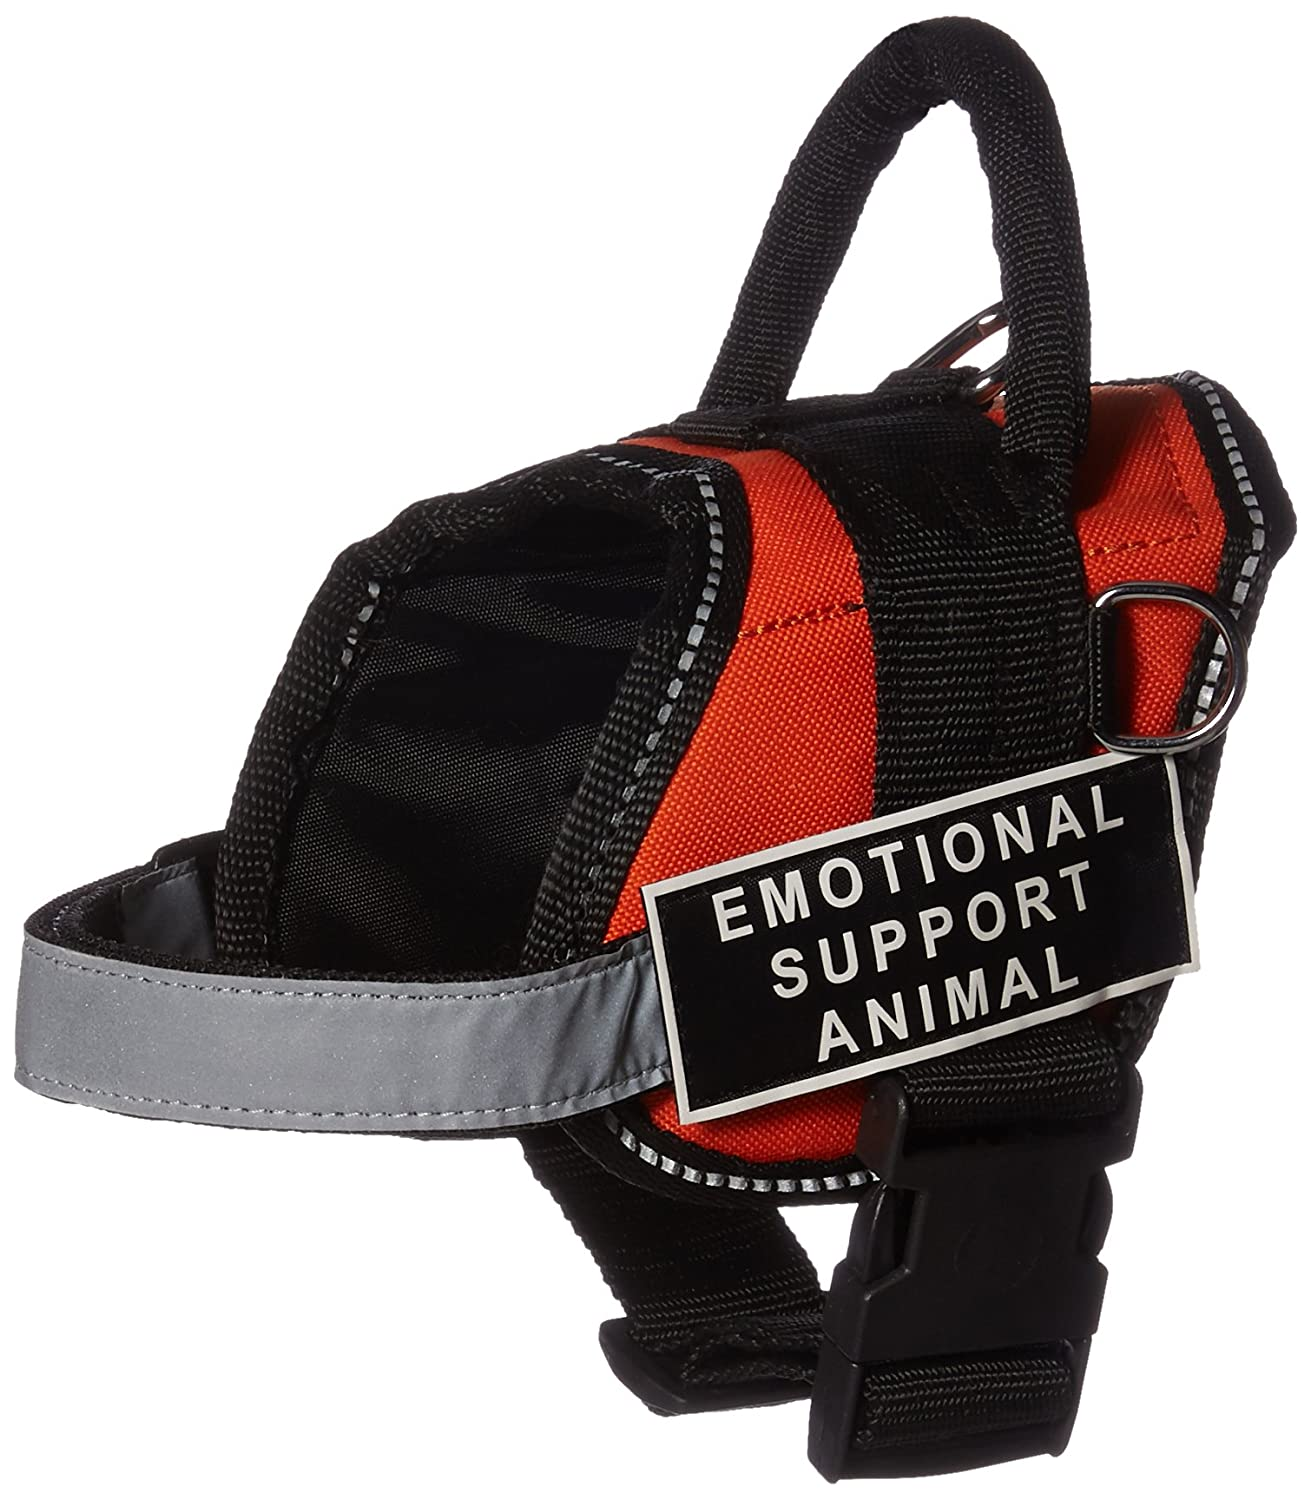 Dean & Tyler Works Emotional Support Animal Pet Harness, XX-Small, Fits Girth Size  18 to 21-Inch, orange Black